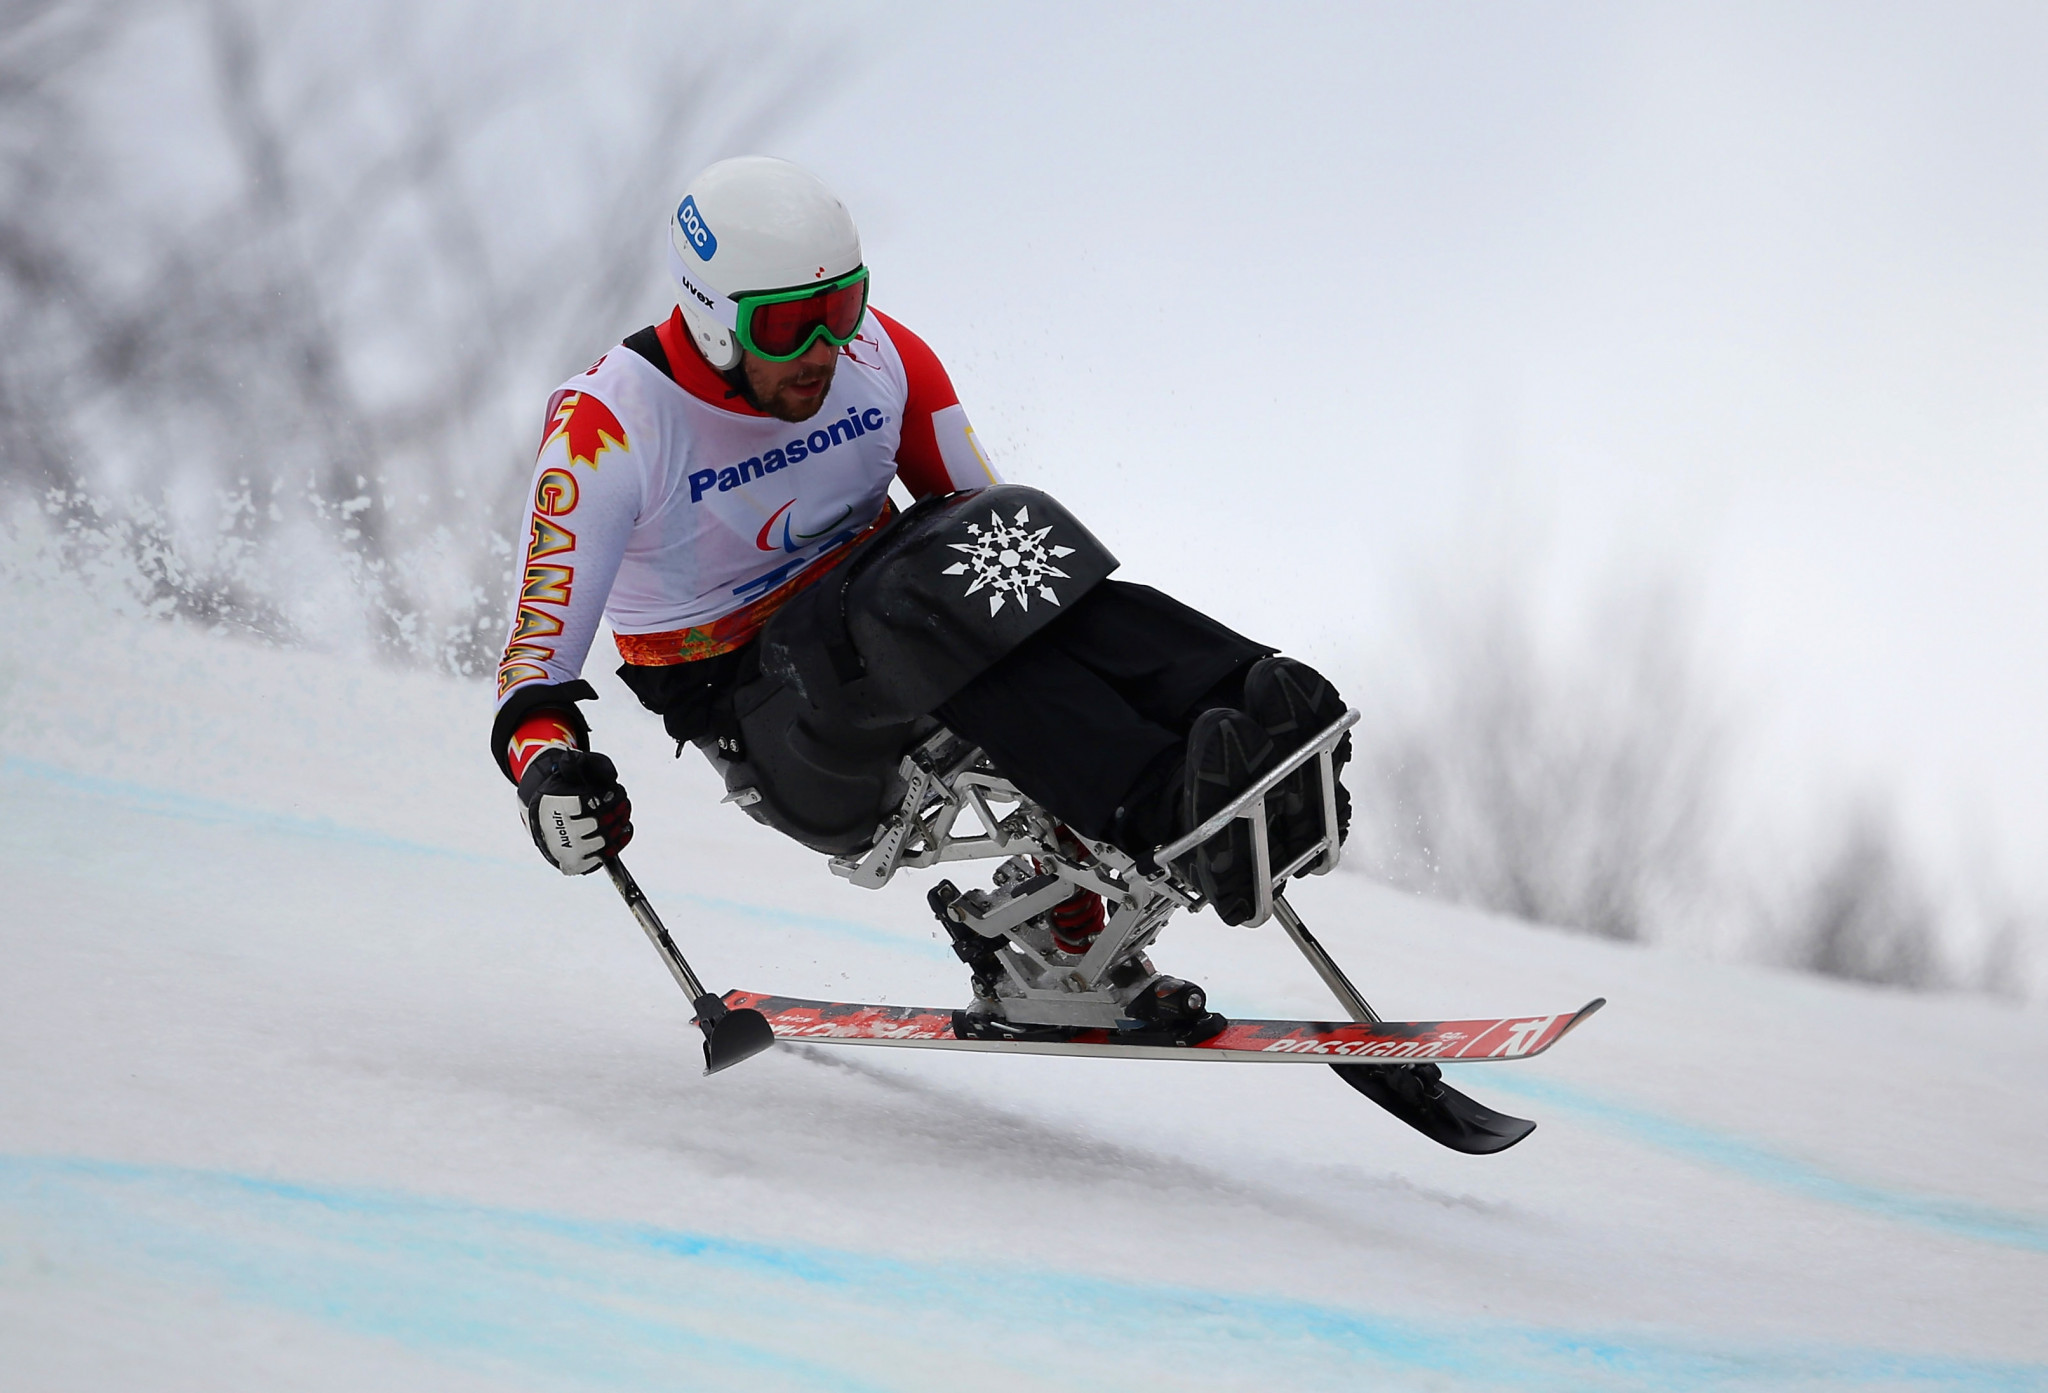 Kurt Oatway is among the returning athletes from Sochi 2014 ©Getty Images